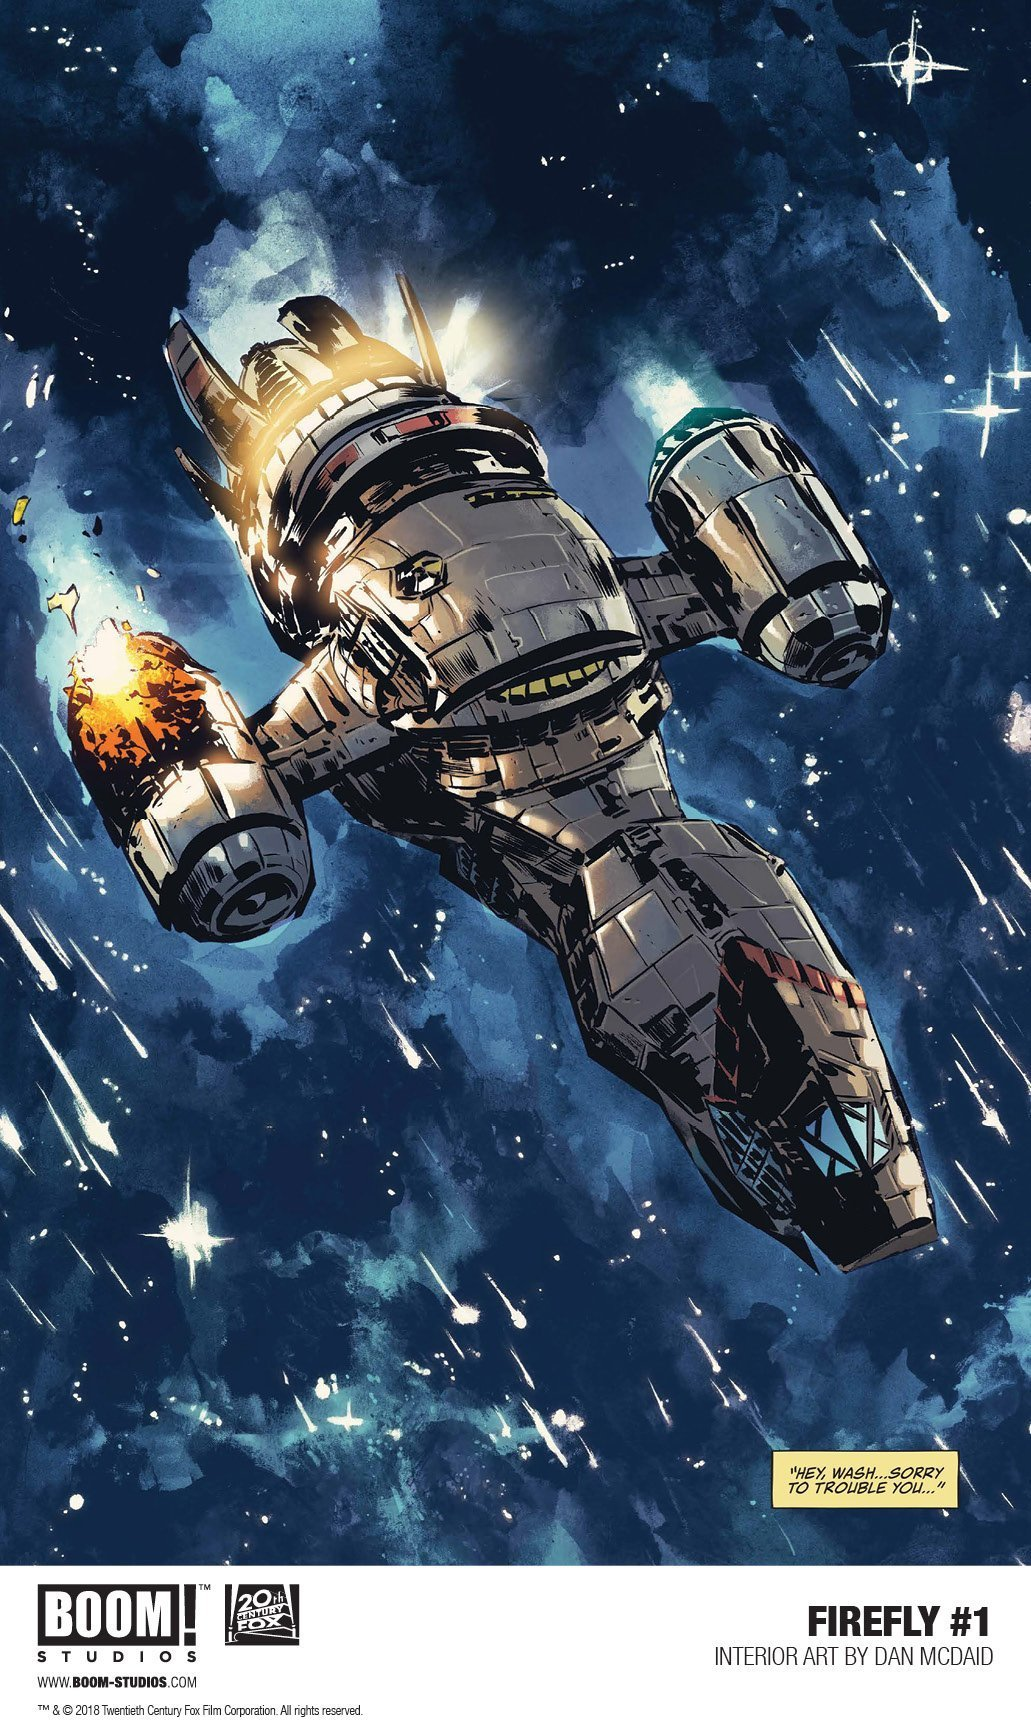 Firefly: A Space Western Comics For Adrenaline Junkies